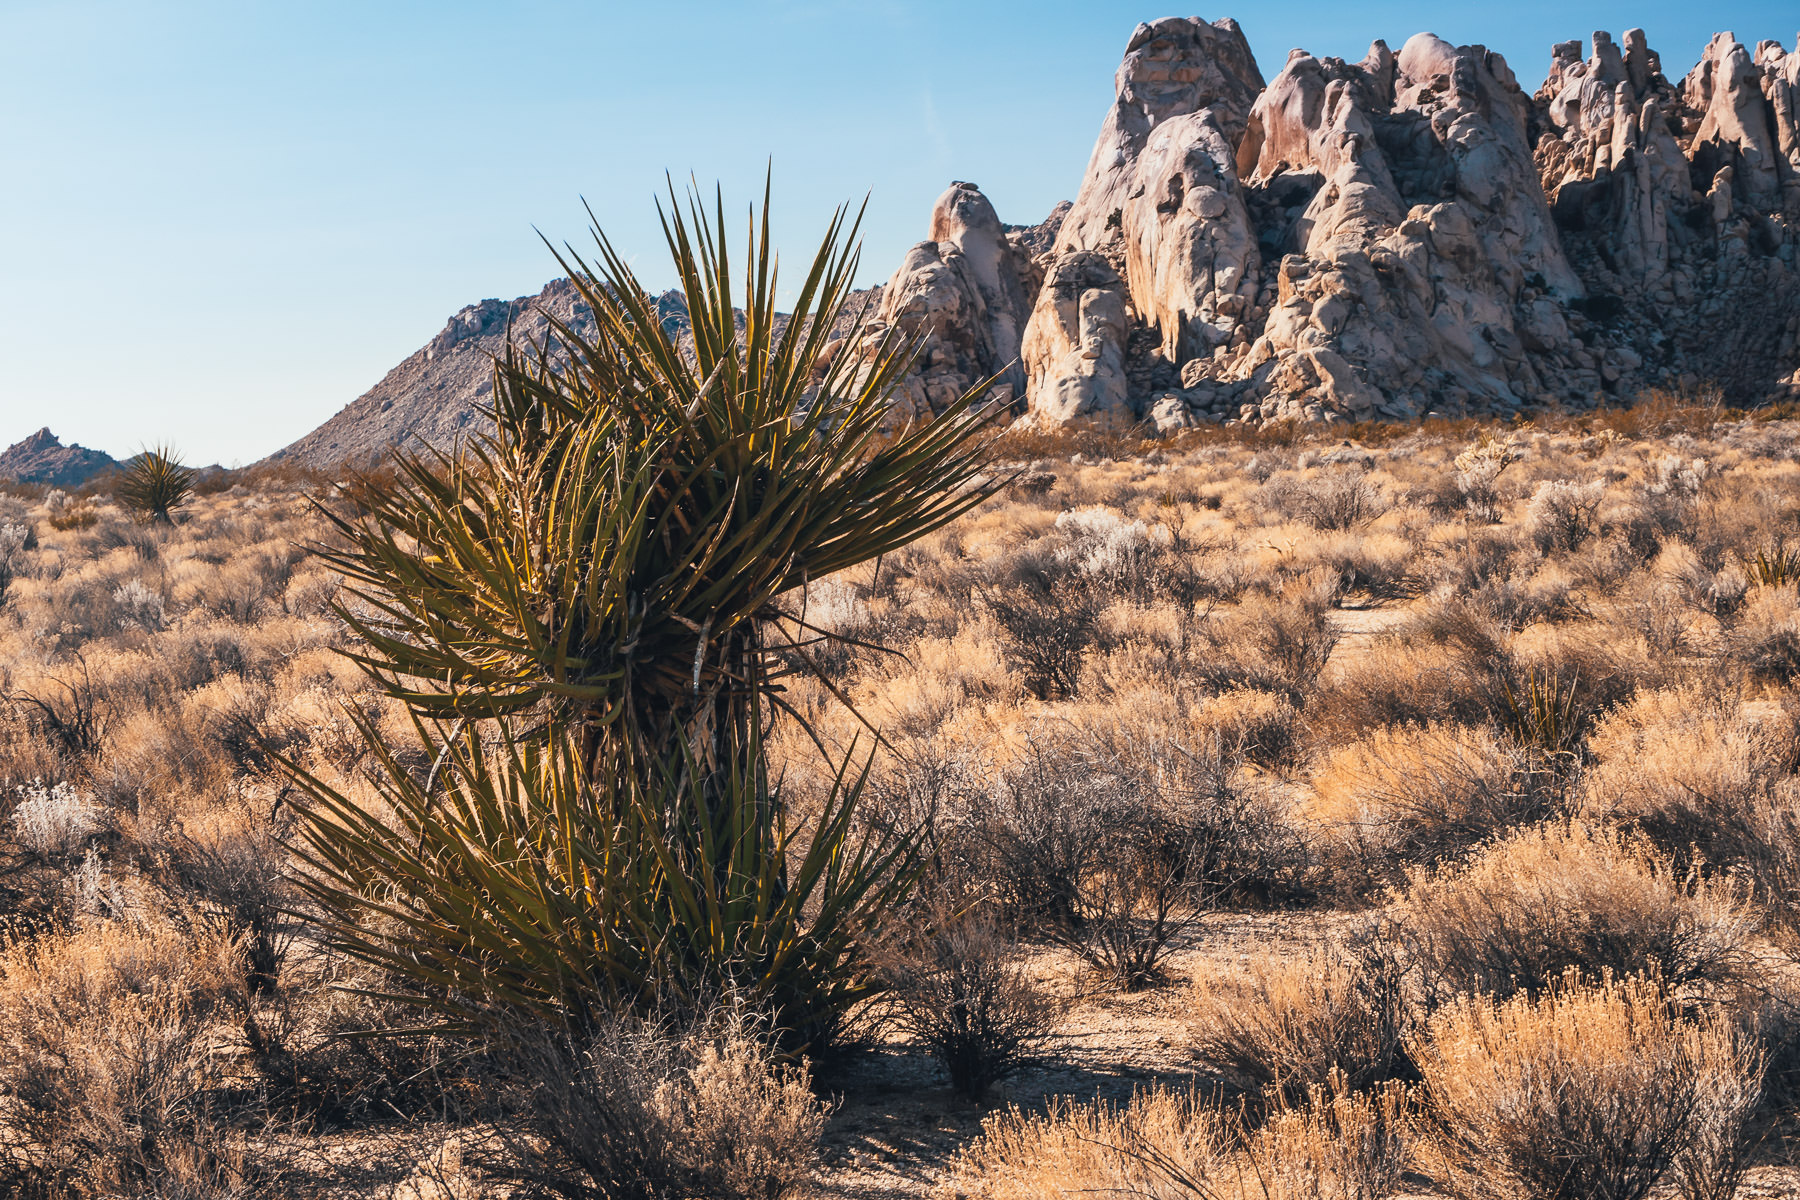 A yucca tree grows near a rocky outcropping in the Mojave National Preserve, California.